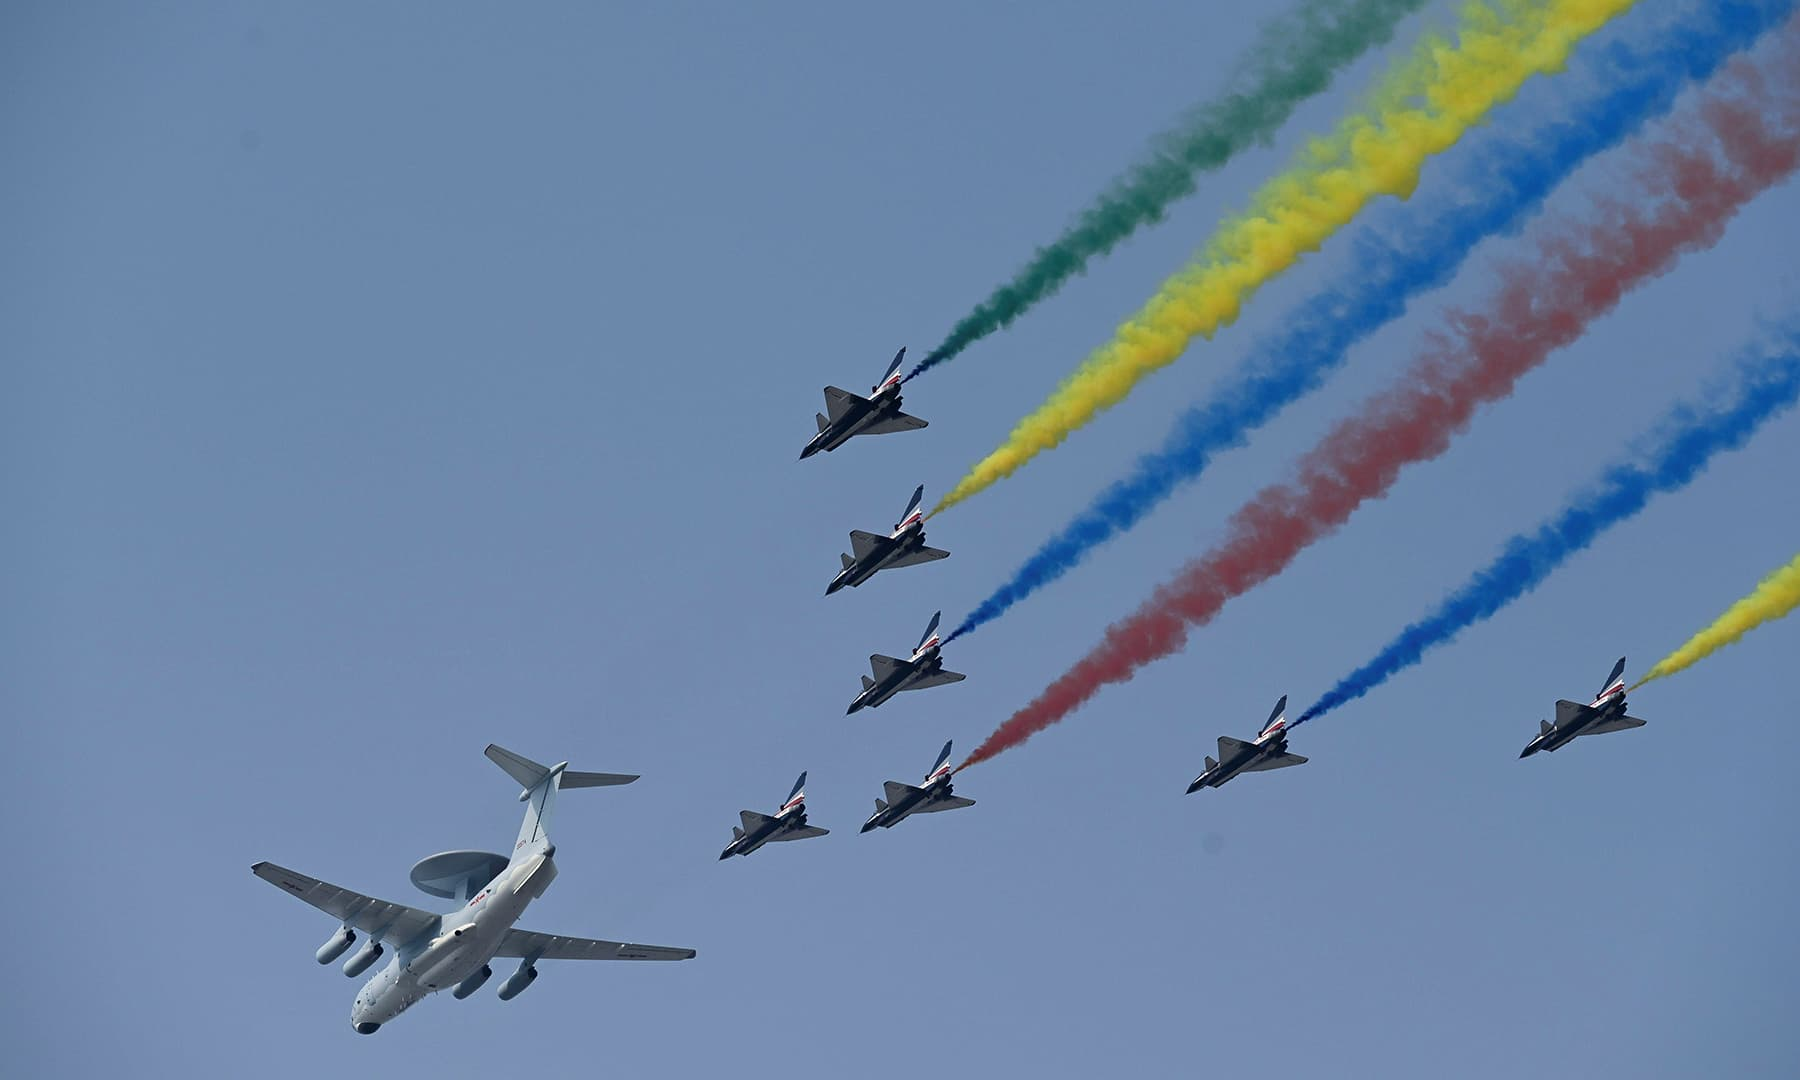 A formation of military airplanes, one KJ-2000 airborne early warning and control aircraft and eight J-10 multirole fighter jets, fly over Beijing during a military parade at Tiananmen Square. — AFP